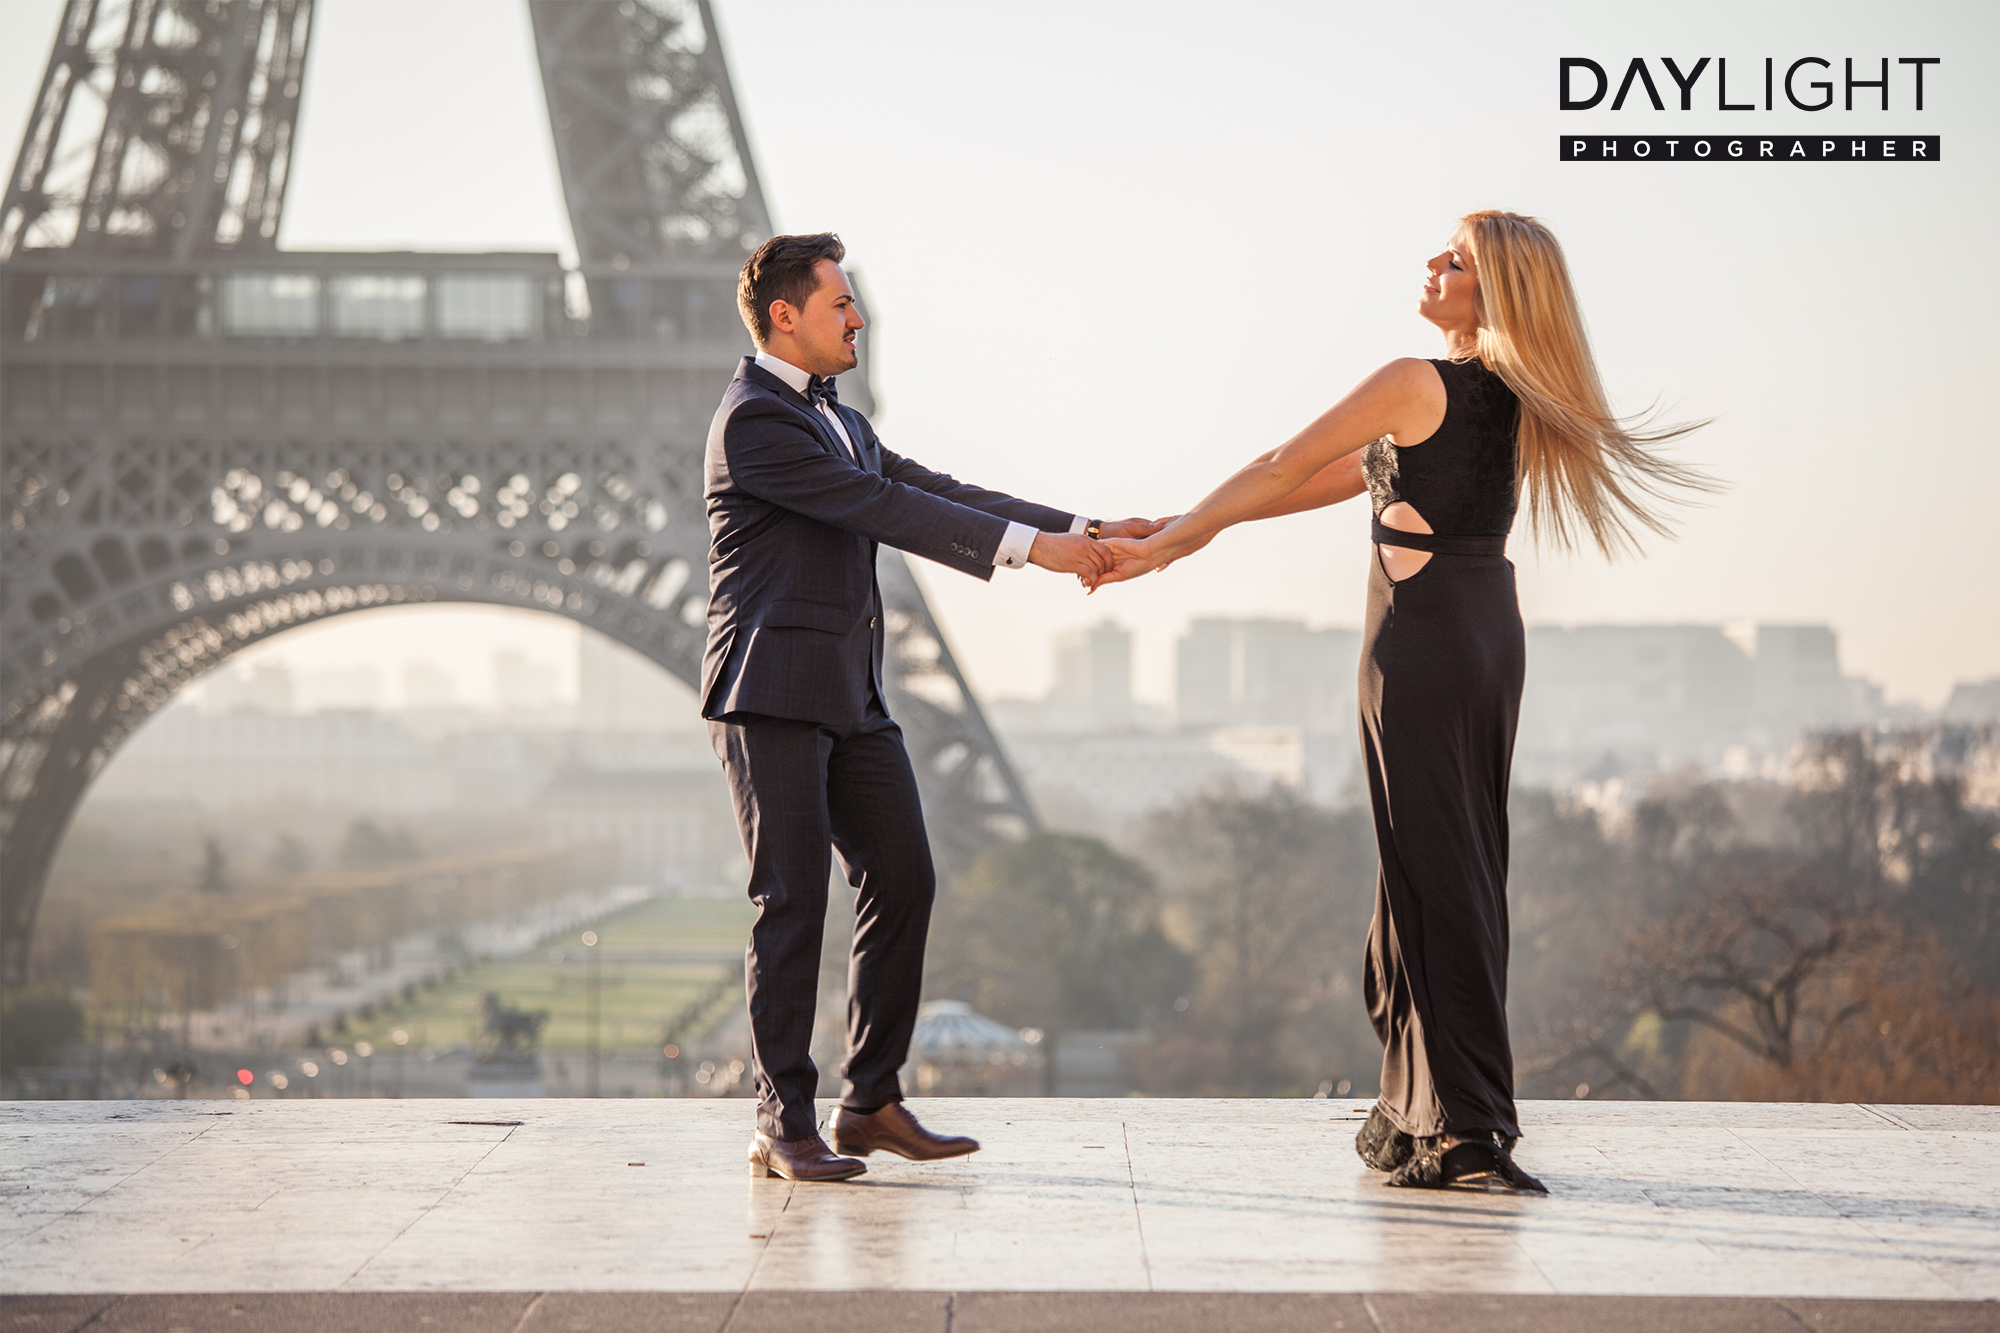 eiffeltower photoshooting couples booking